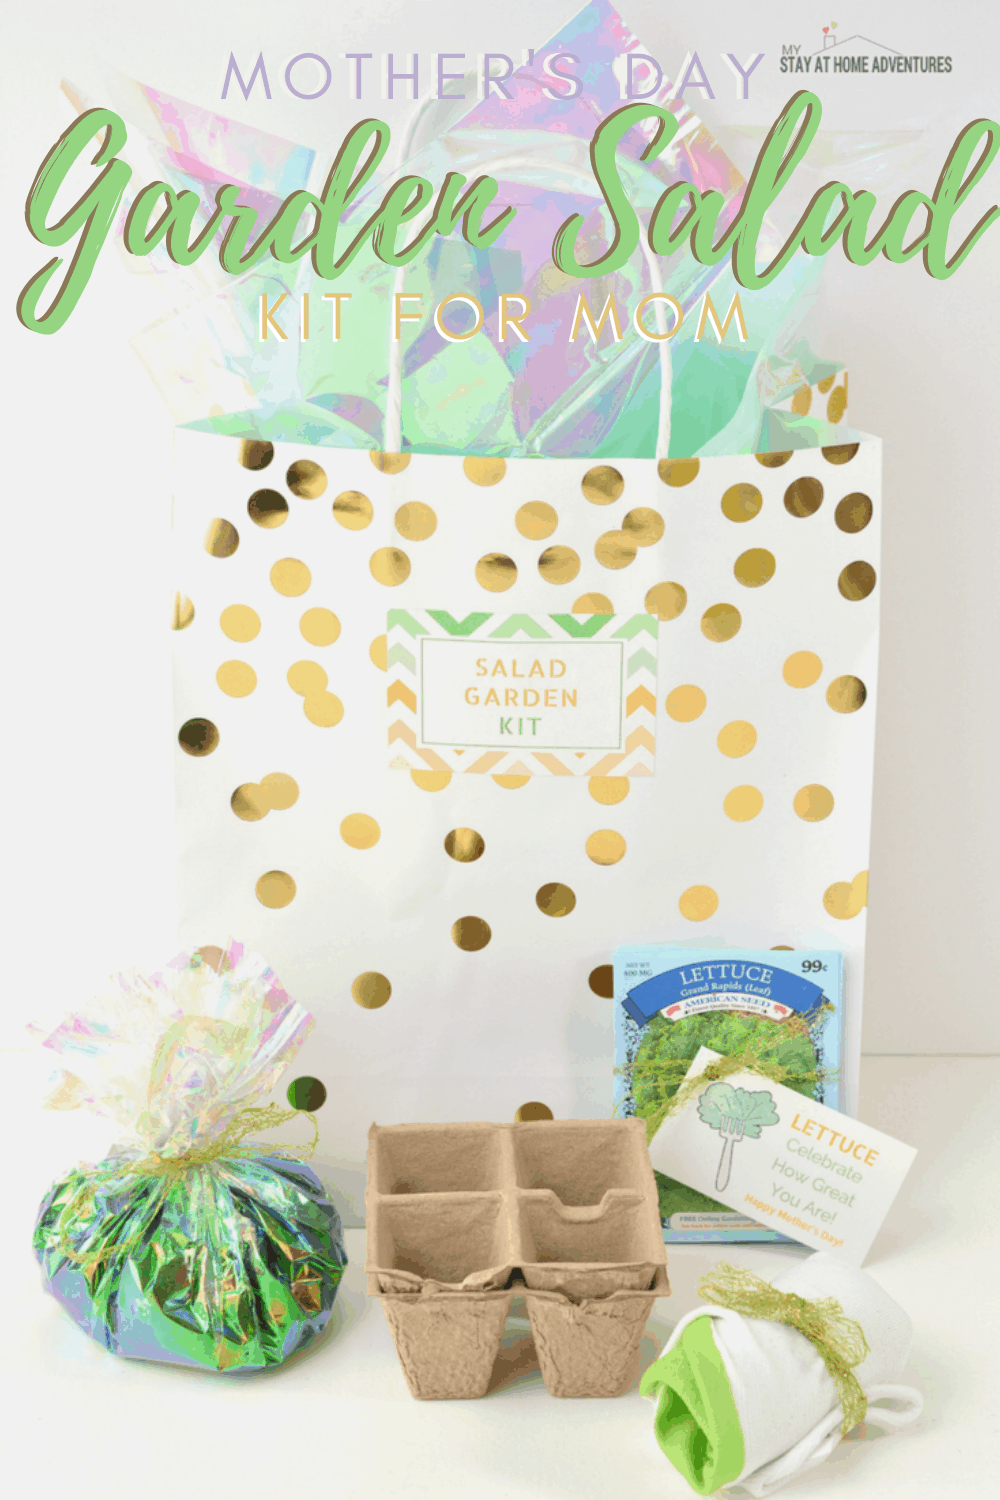 Last-minute, budget-friendly, Mother's Day DIY Gift for the mom who loves to garden. Learn how to create this Salad Garden Kit with free printables included. #gardening #mothersday #diygift via @mystayathome